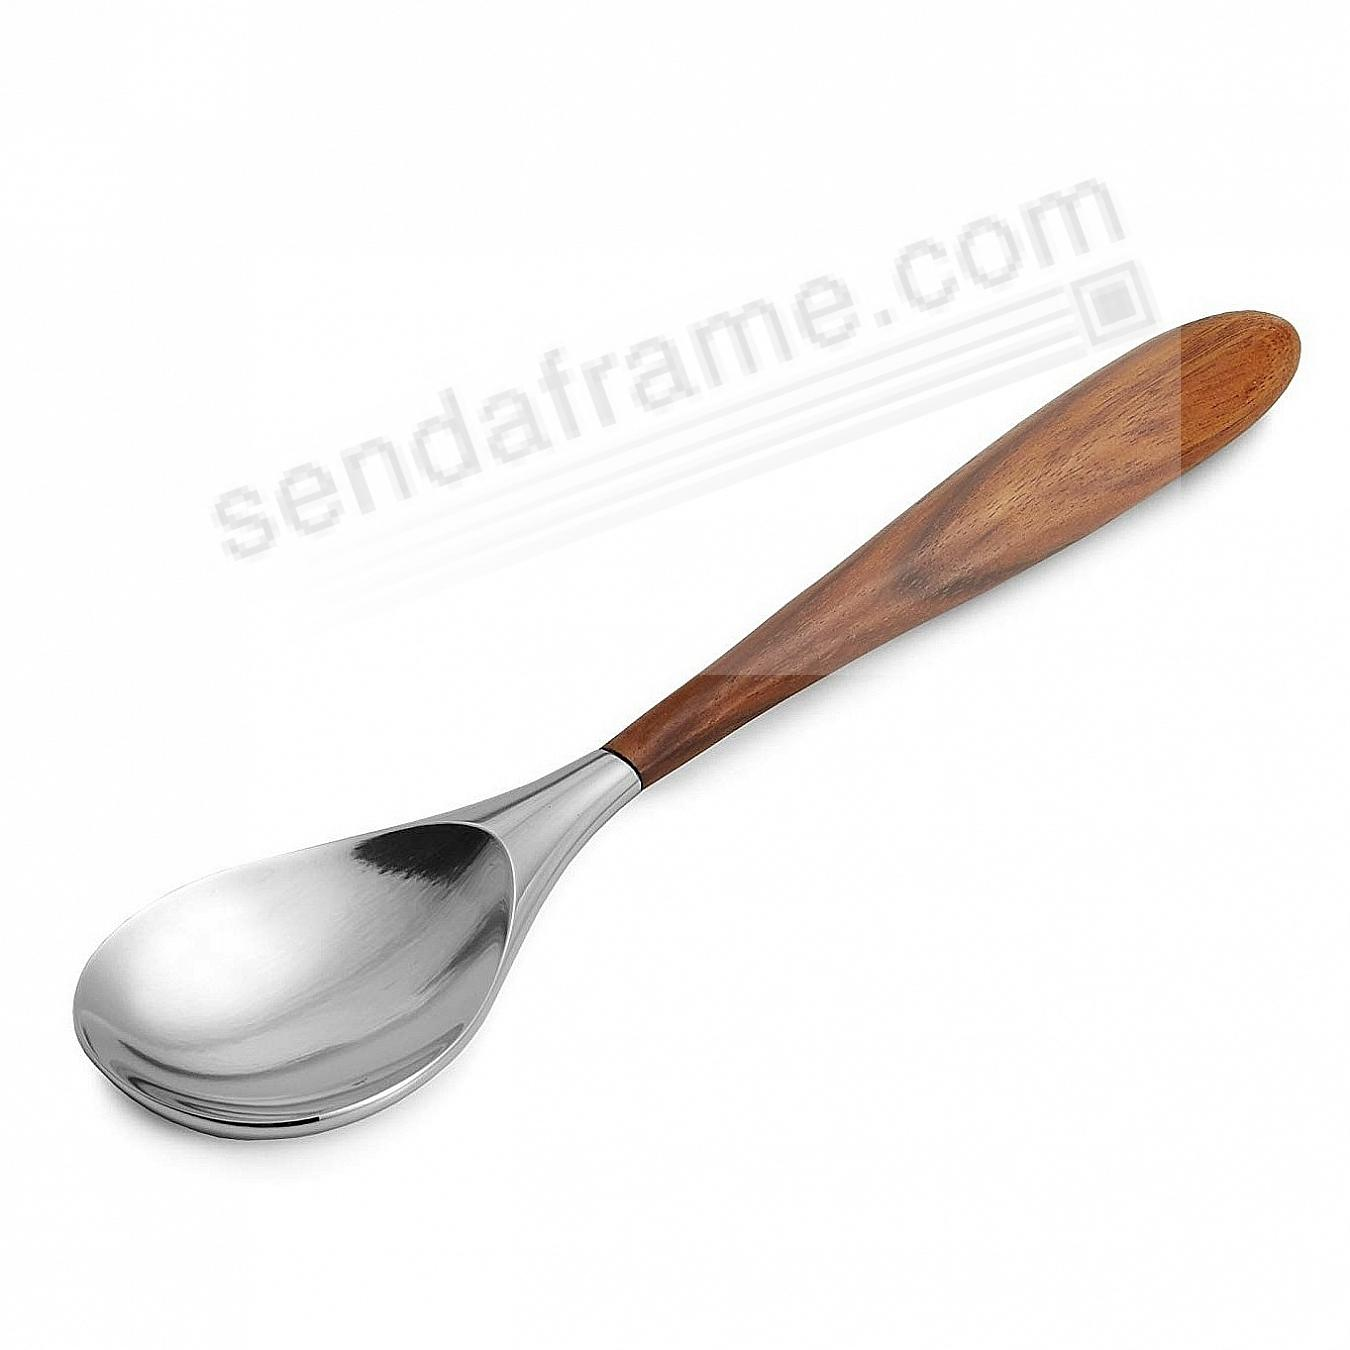 CURVO SERVING SPOON crafted by Nambe®